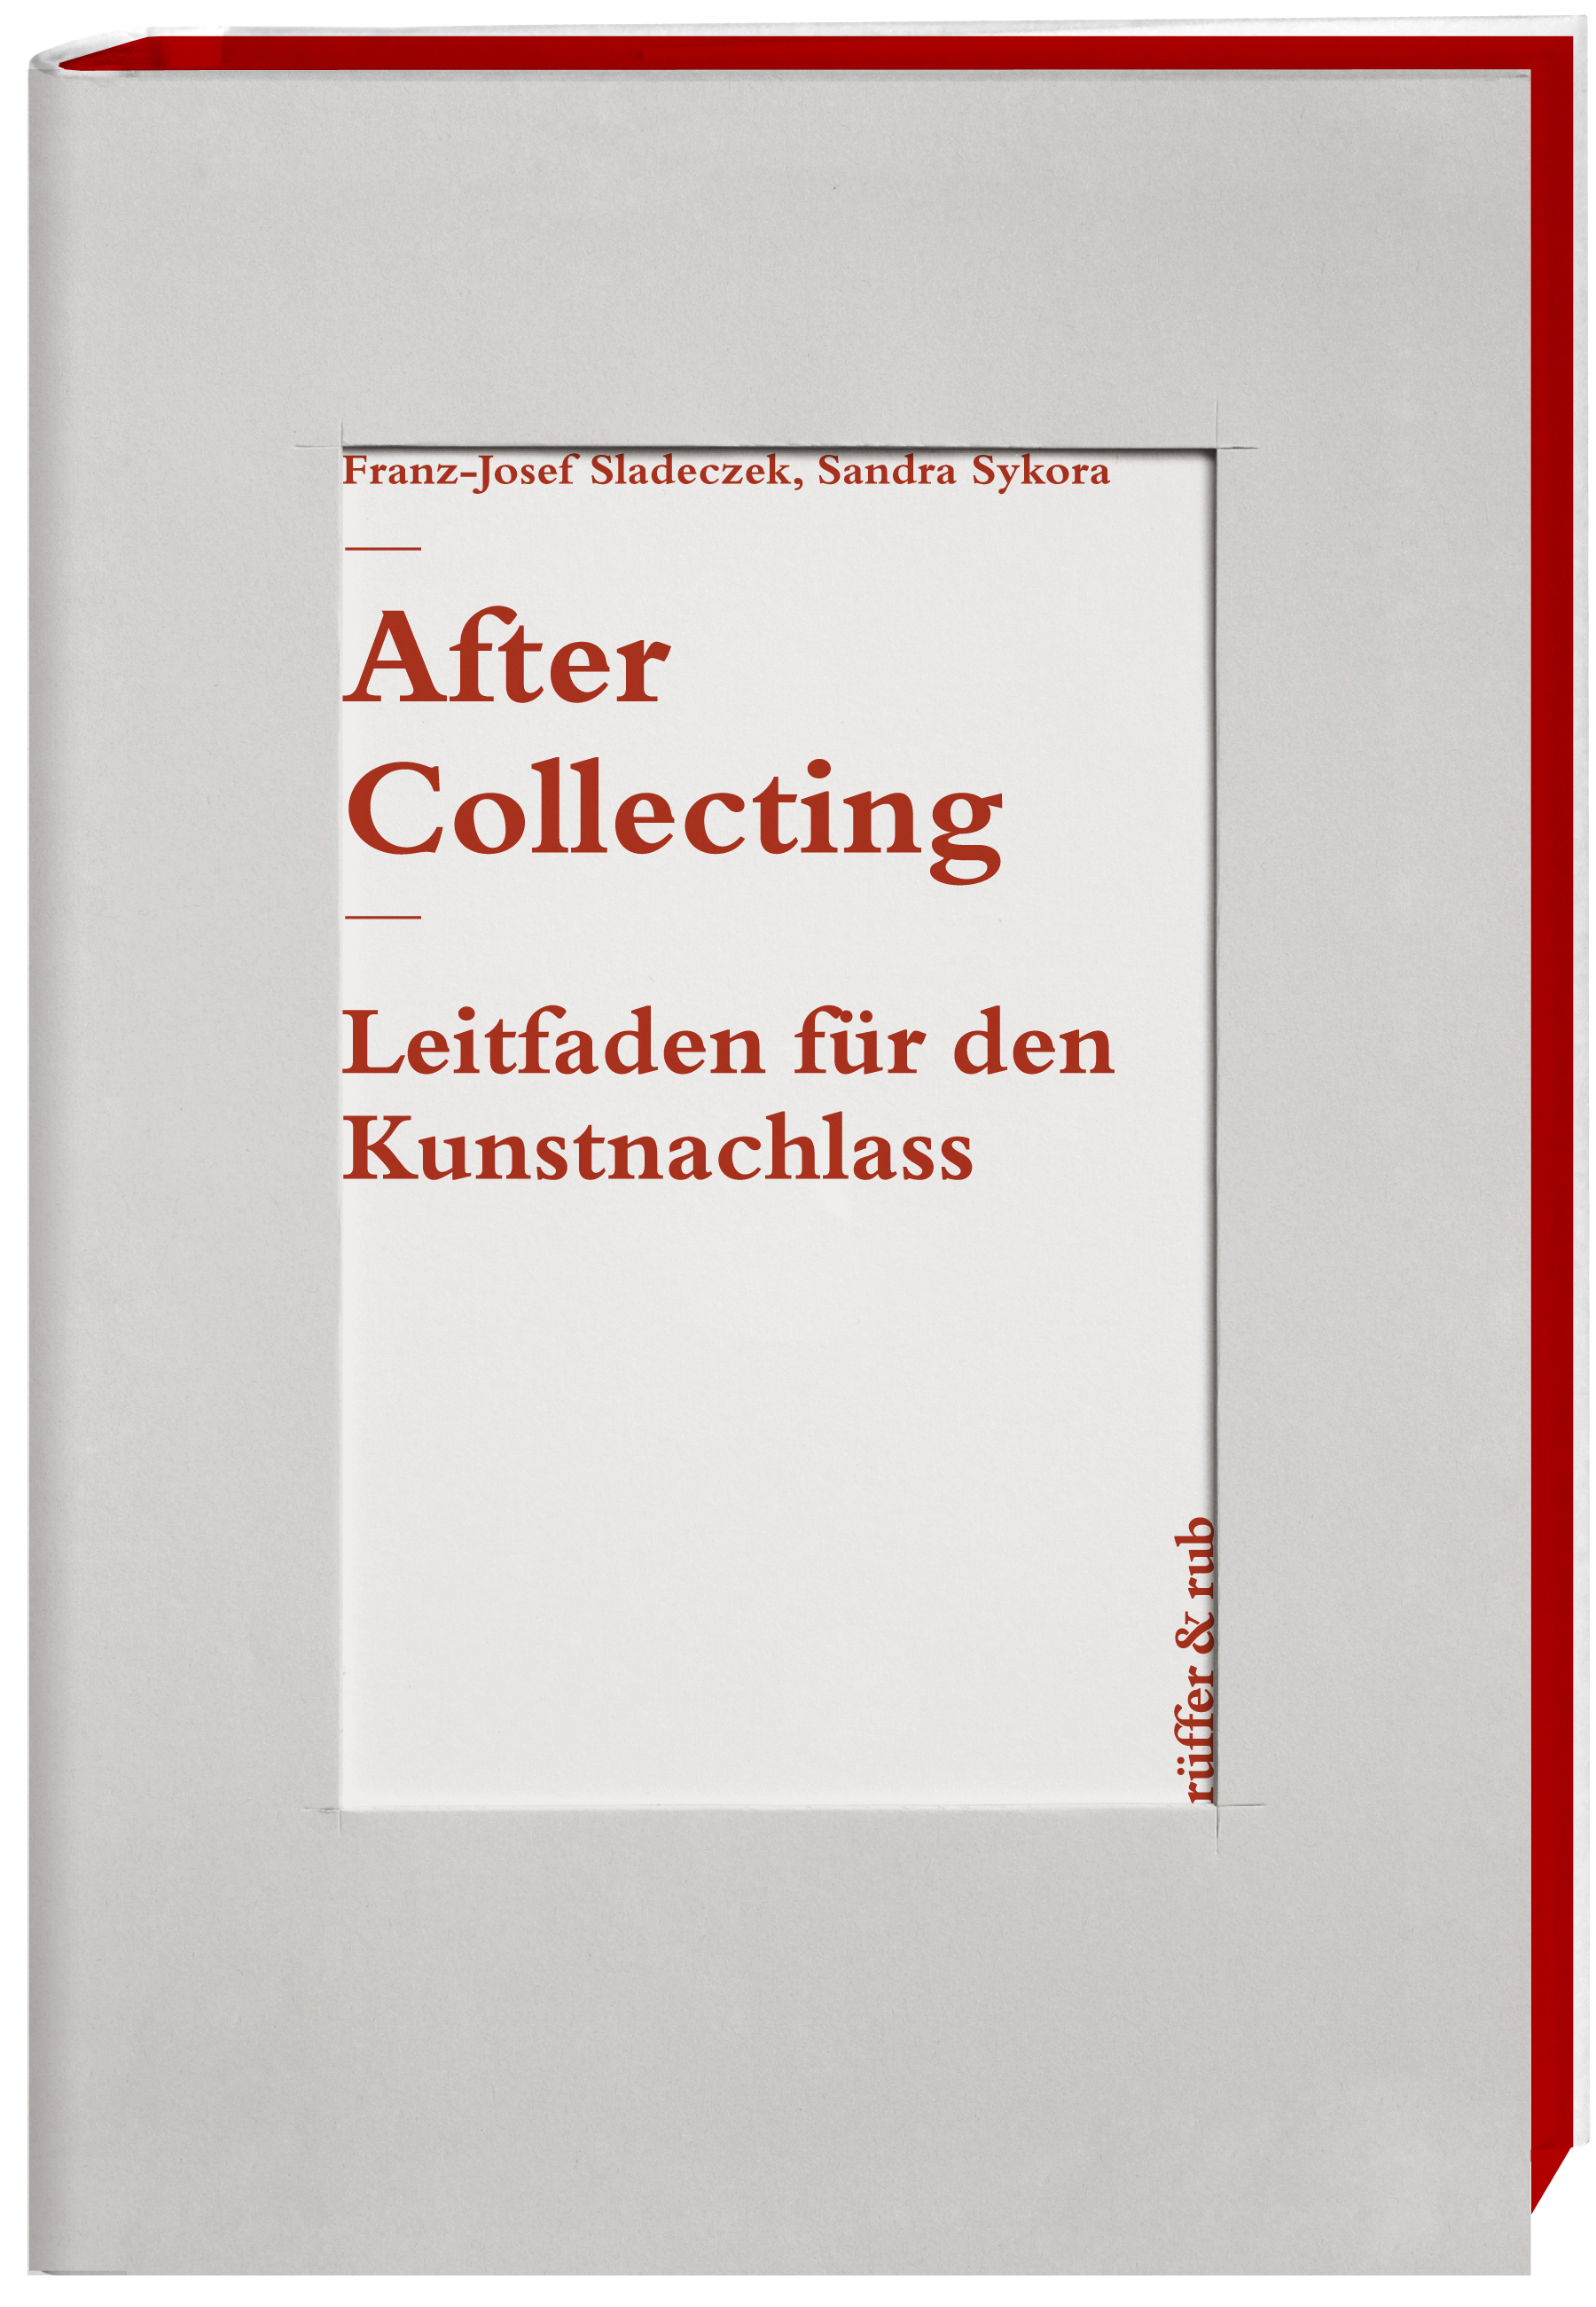 After Collecting, Franz-Josef Sladeczek